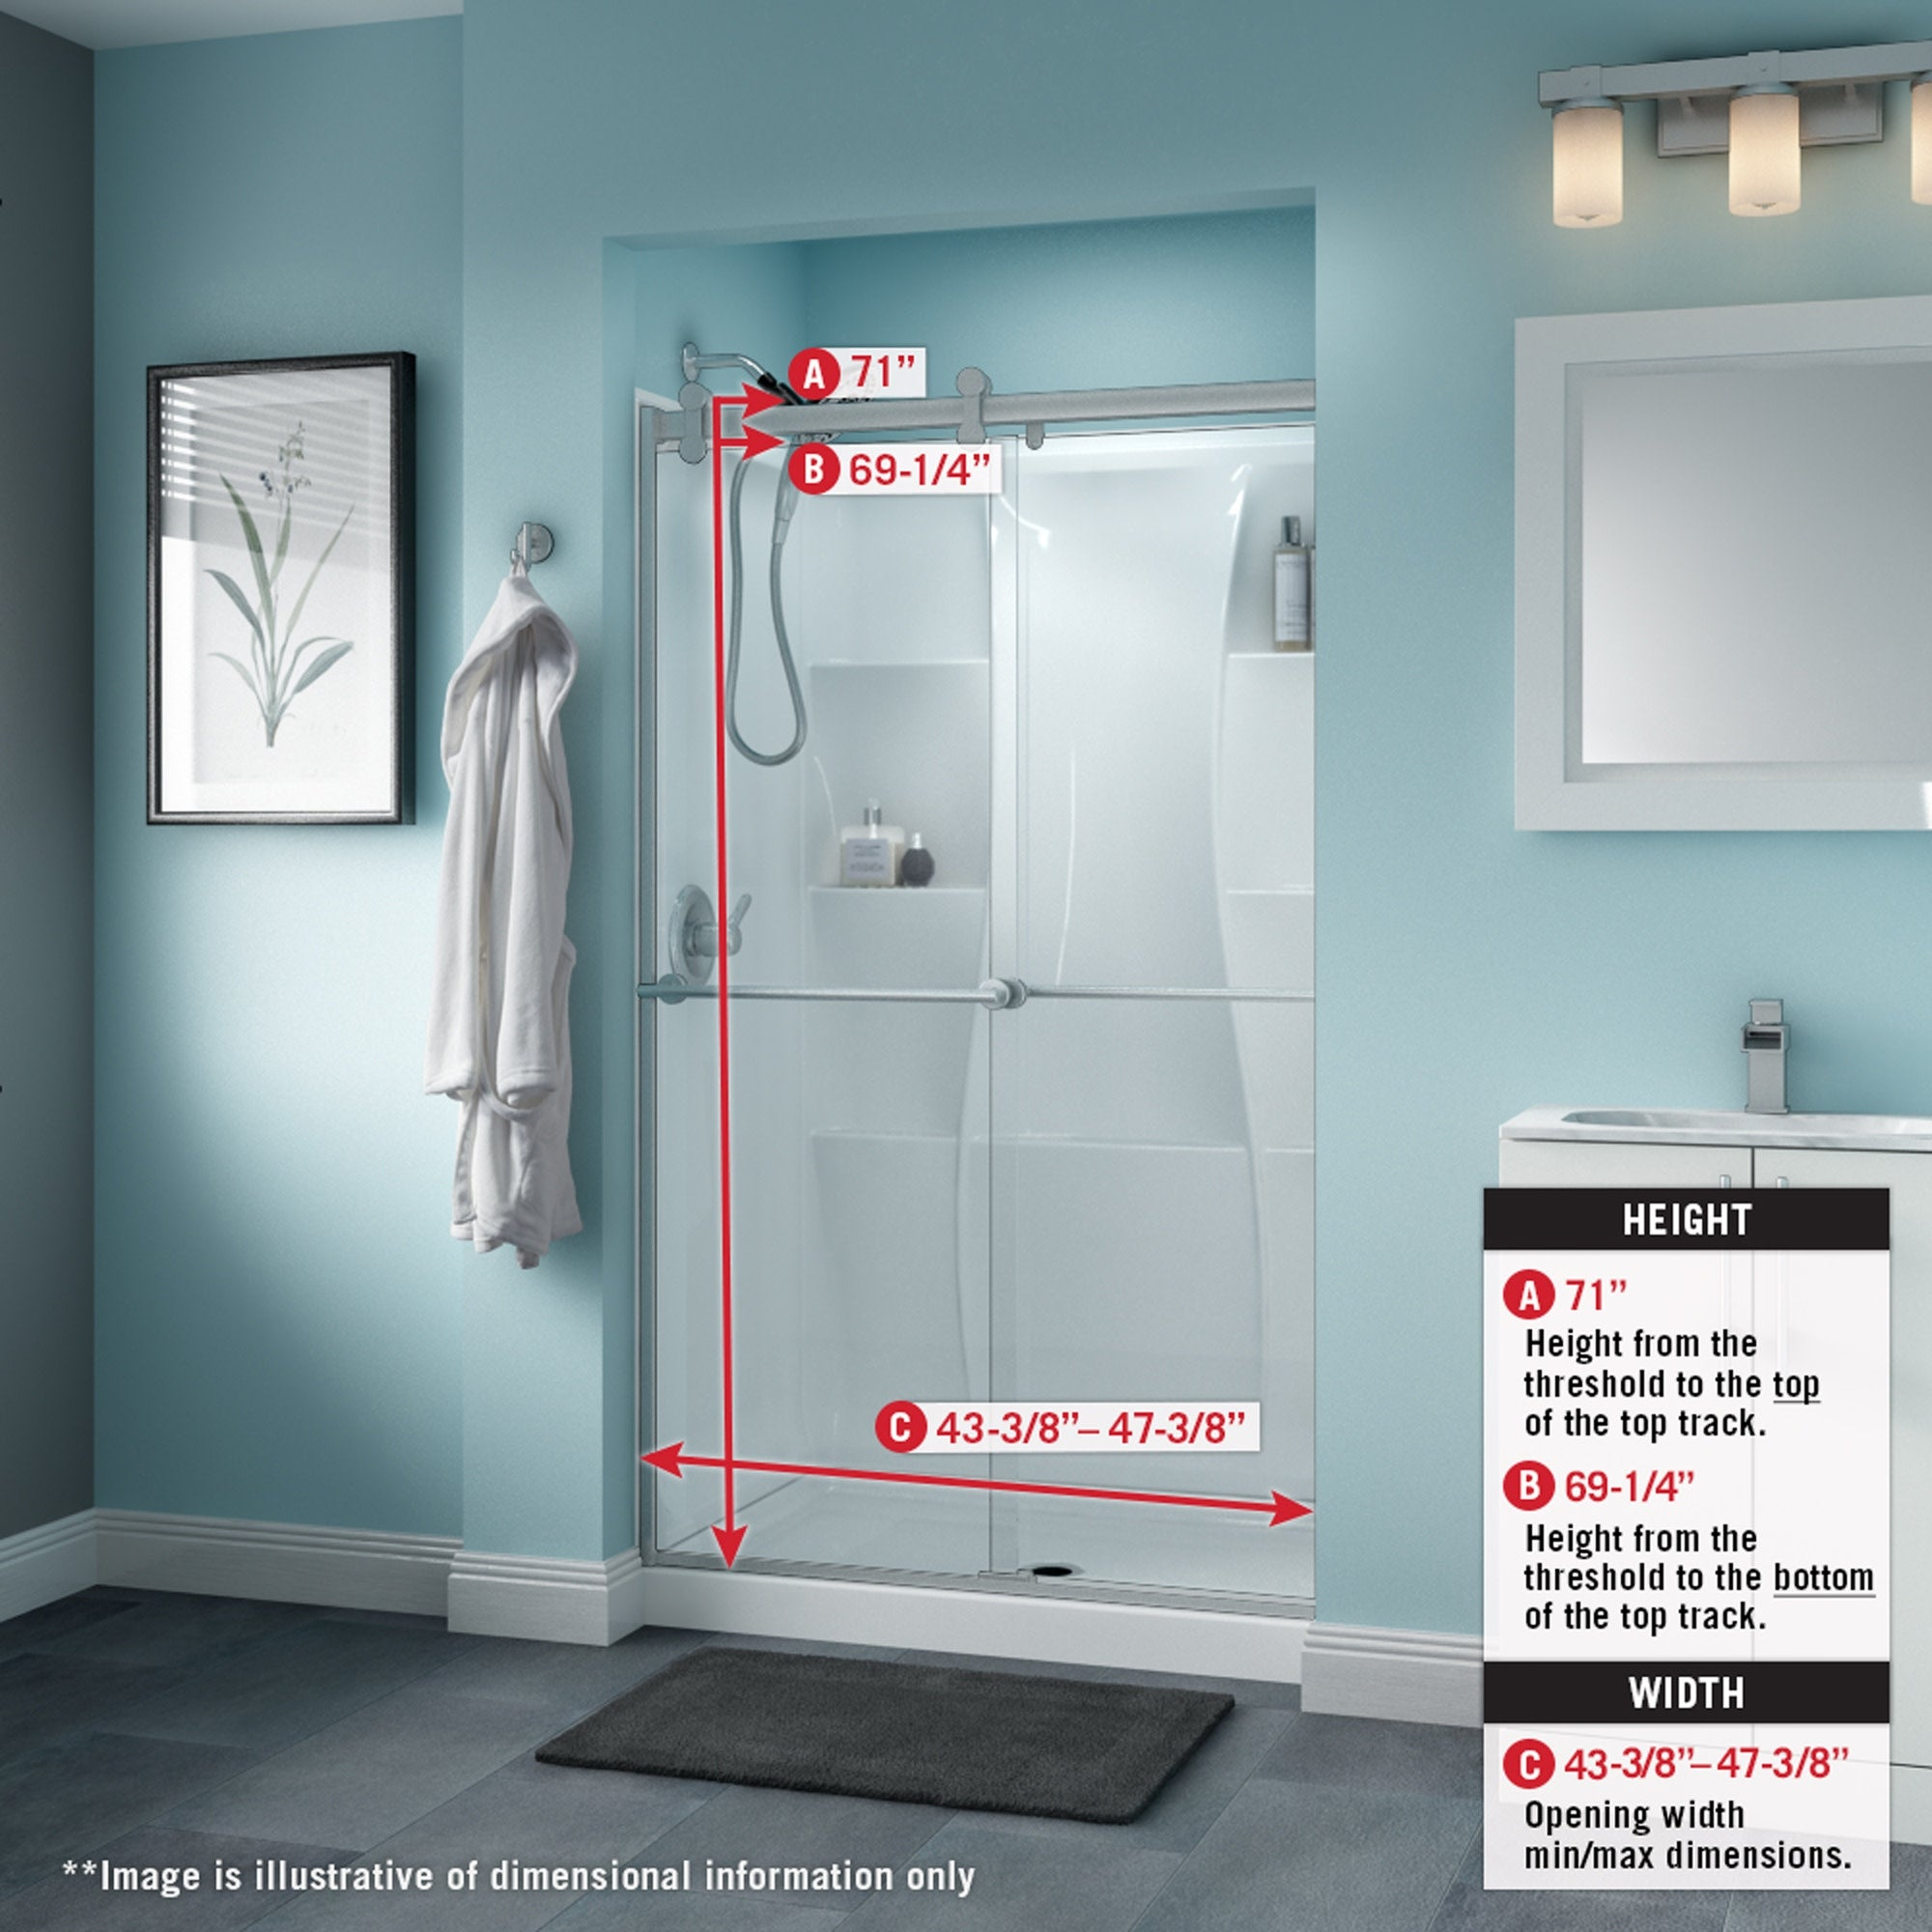 Delta Sd3276567 Trinsic 71 High X 47 3 8 Wide Sliding Frameless Shower Door With Clear Glass Nickel